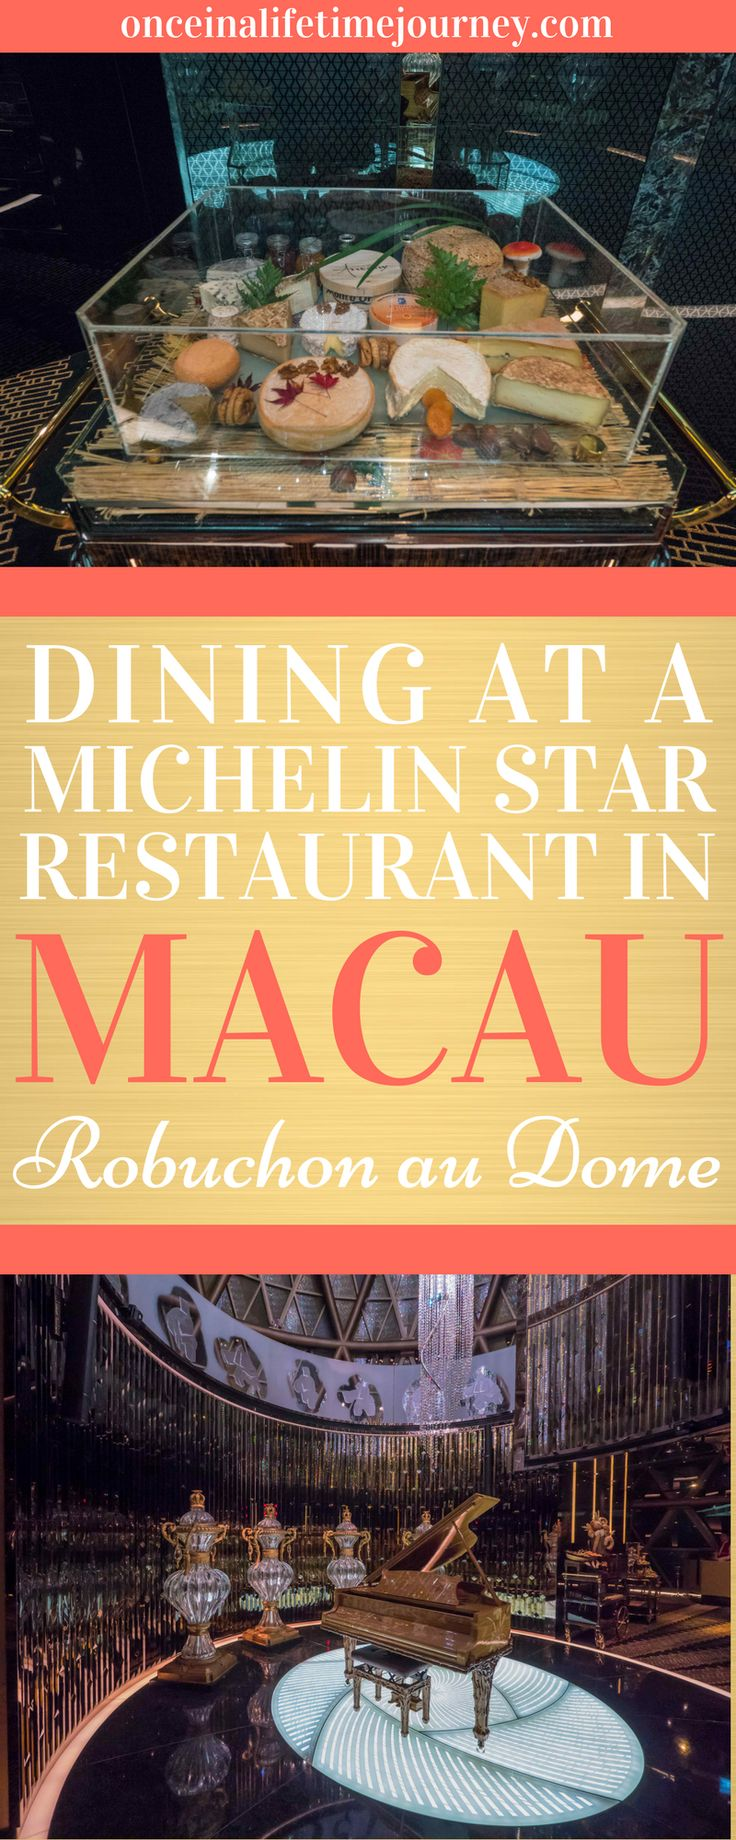 Macau is filled with Michelin-awarded restaurants and during my last visit there I booked to dine at the only two that have three Michelin stars: Robuchon au Dome and The Eight. Click through to read about my experience dining at the French Michelin starred restaurant, Robuchon au Dome Macau, and to find out if I thought it was worth the price. | Once in a Lifetime Journey #macau #asia #michelinstar #robuchonaudome #finedining #frenchcuisine